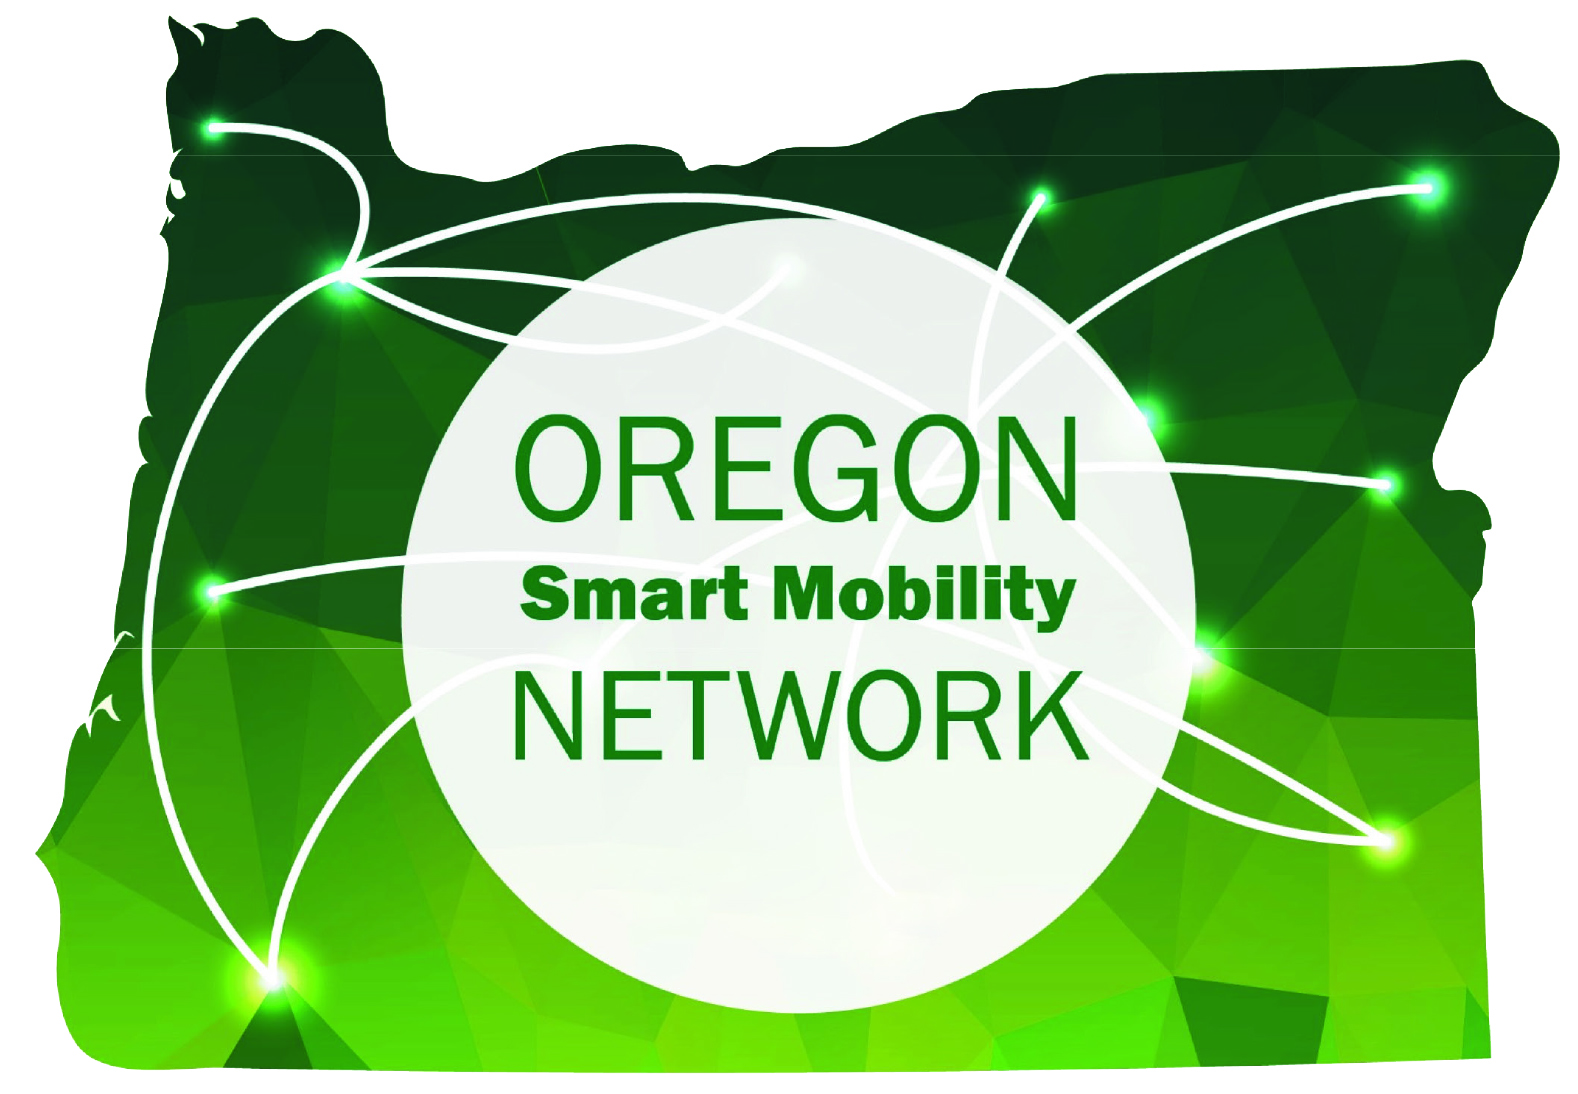 Oregon Smart Mobility Network